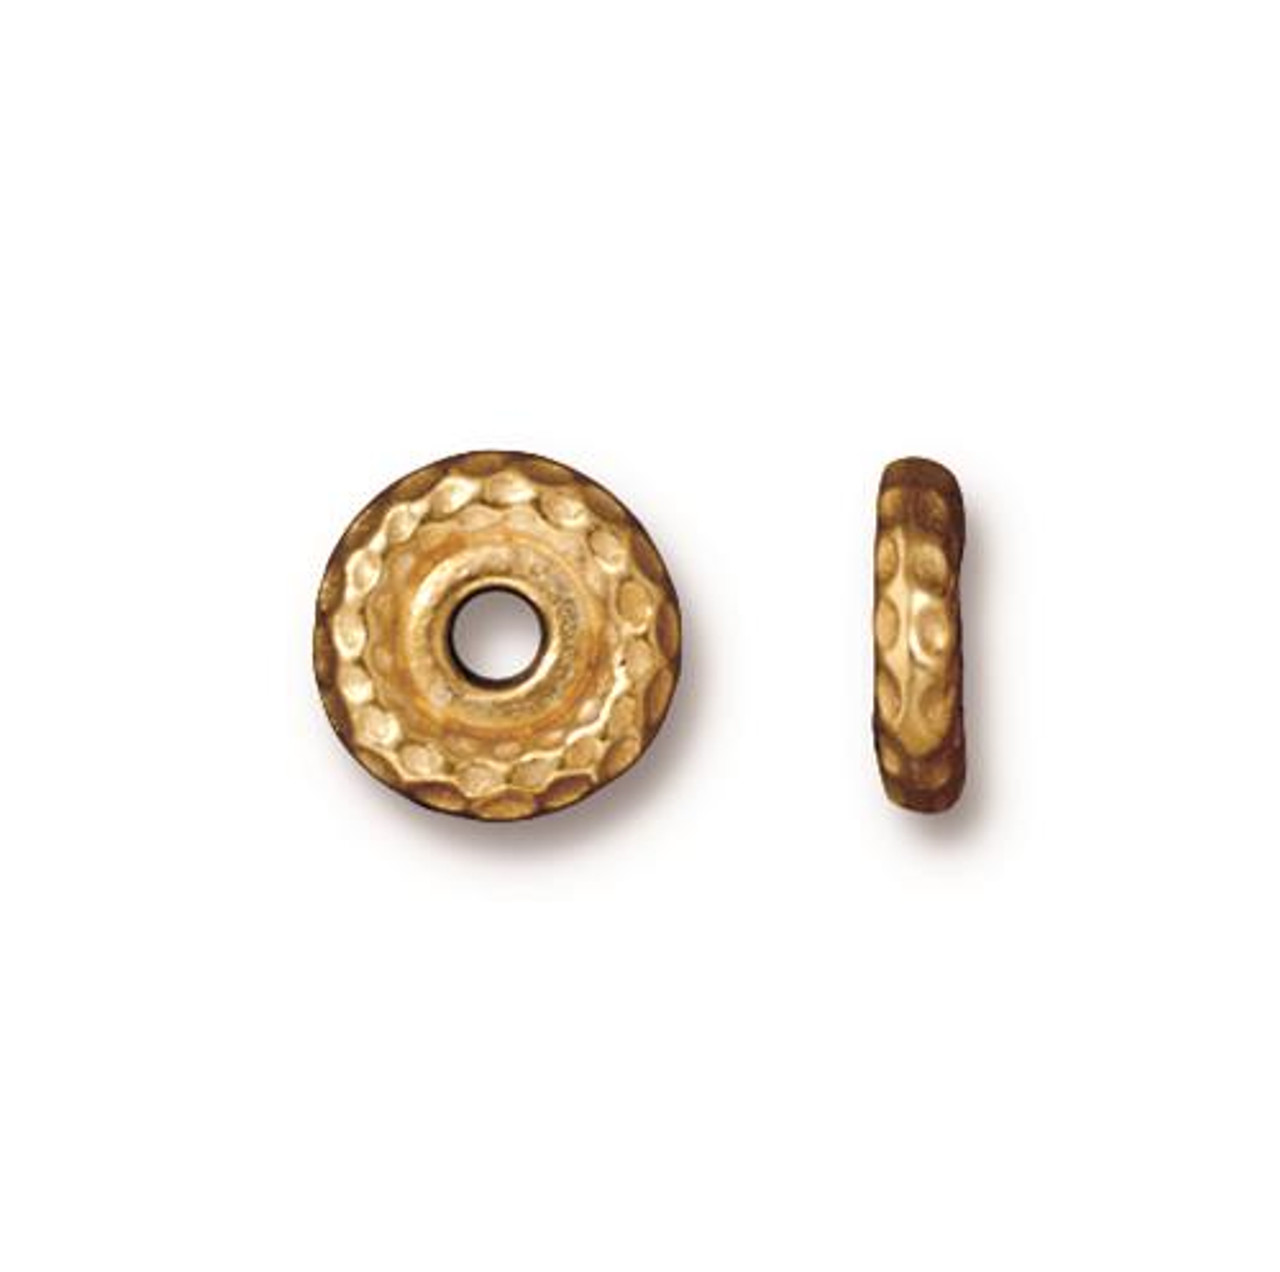 Hammertone 10mm Large Hole Bead, Gold Plate, 20 per Pack